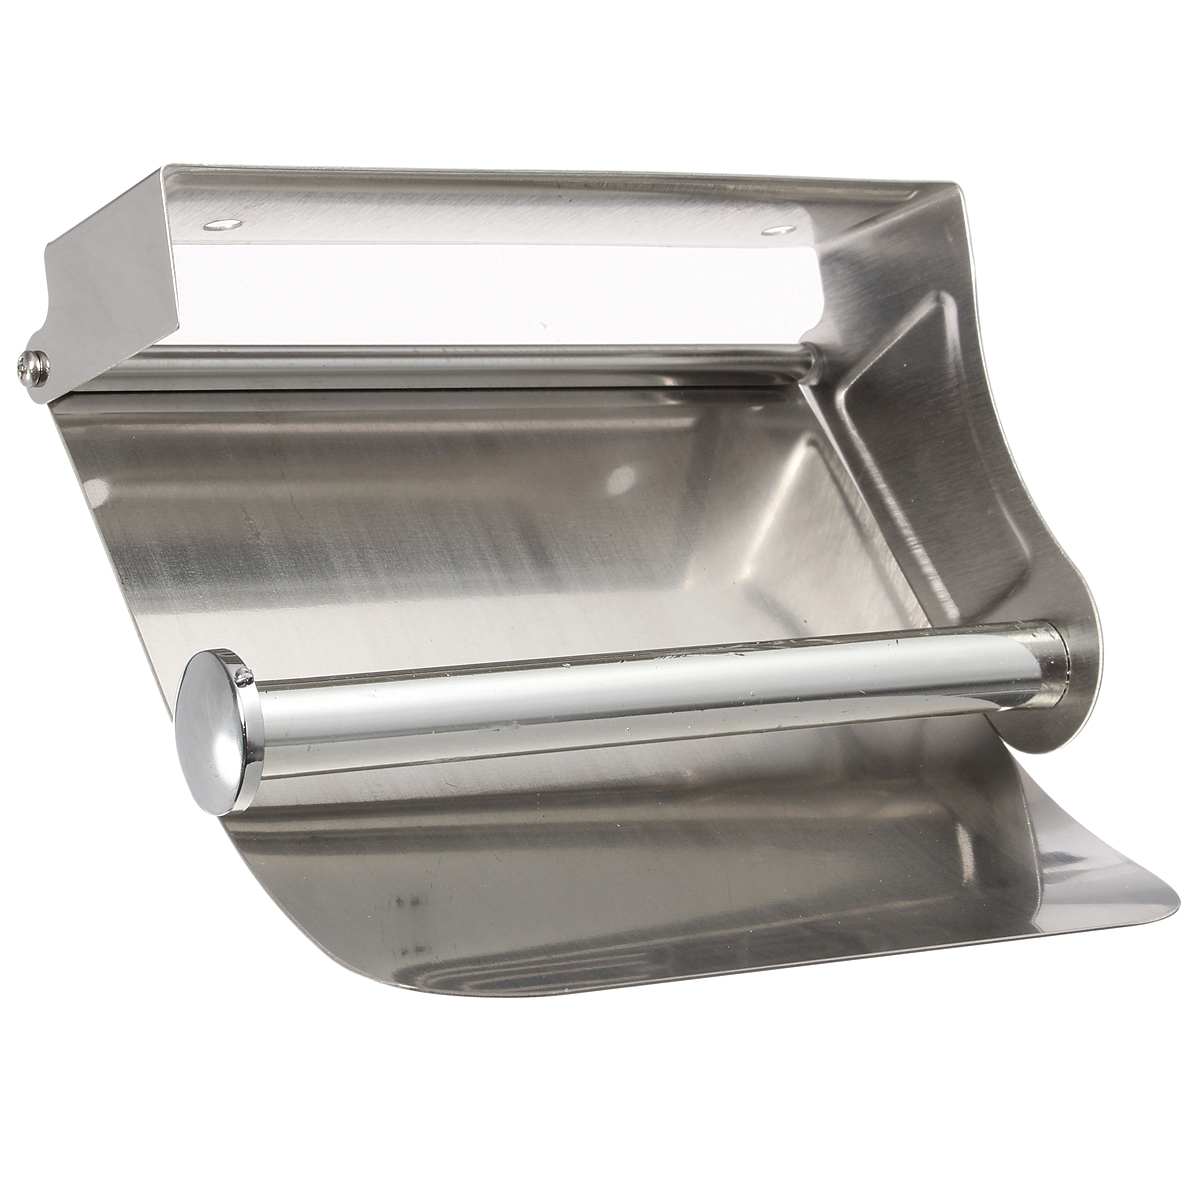 Stainless Steel Toilet Paper Stand Bathroom Stainless Steel Wall Mounted Toilet Paper Holder